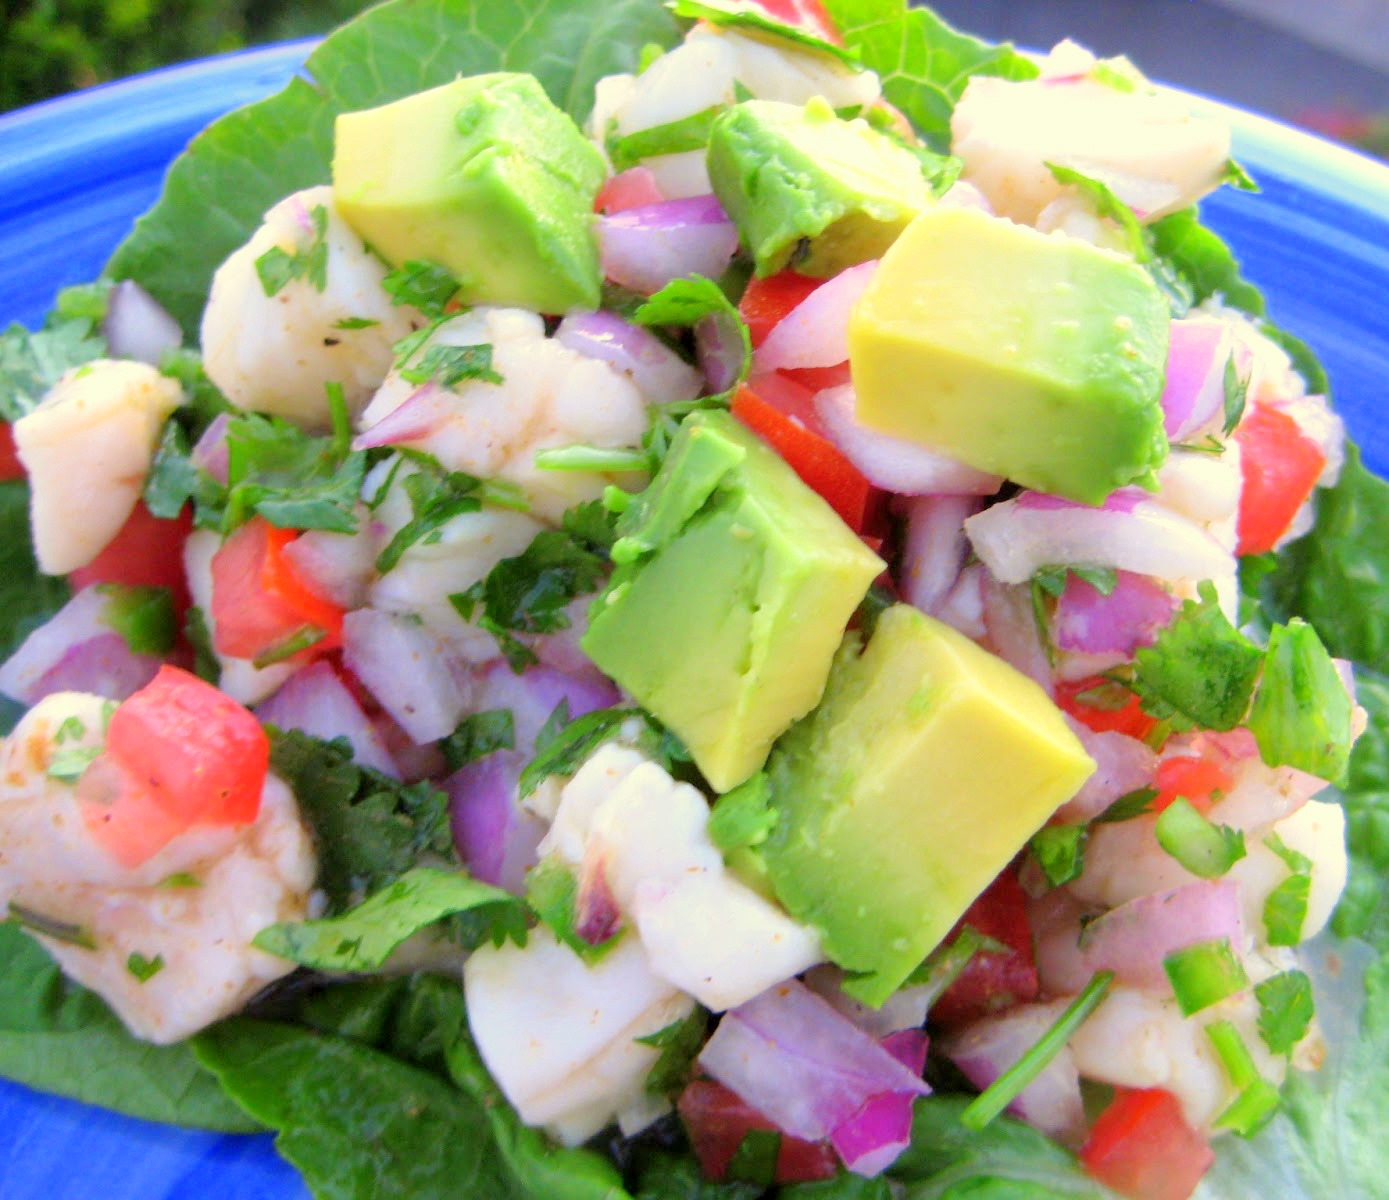 ONE DISH AT A TIME: CHILEAN SEA BASS CEVICHE